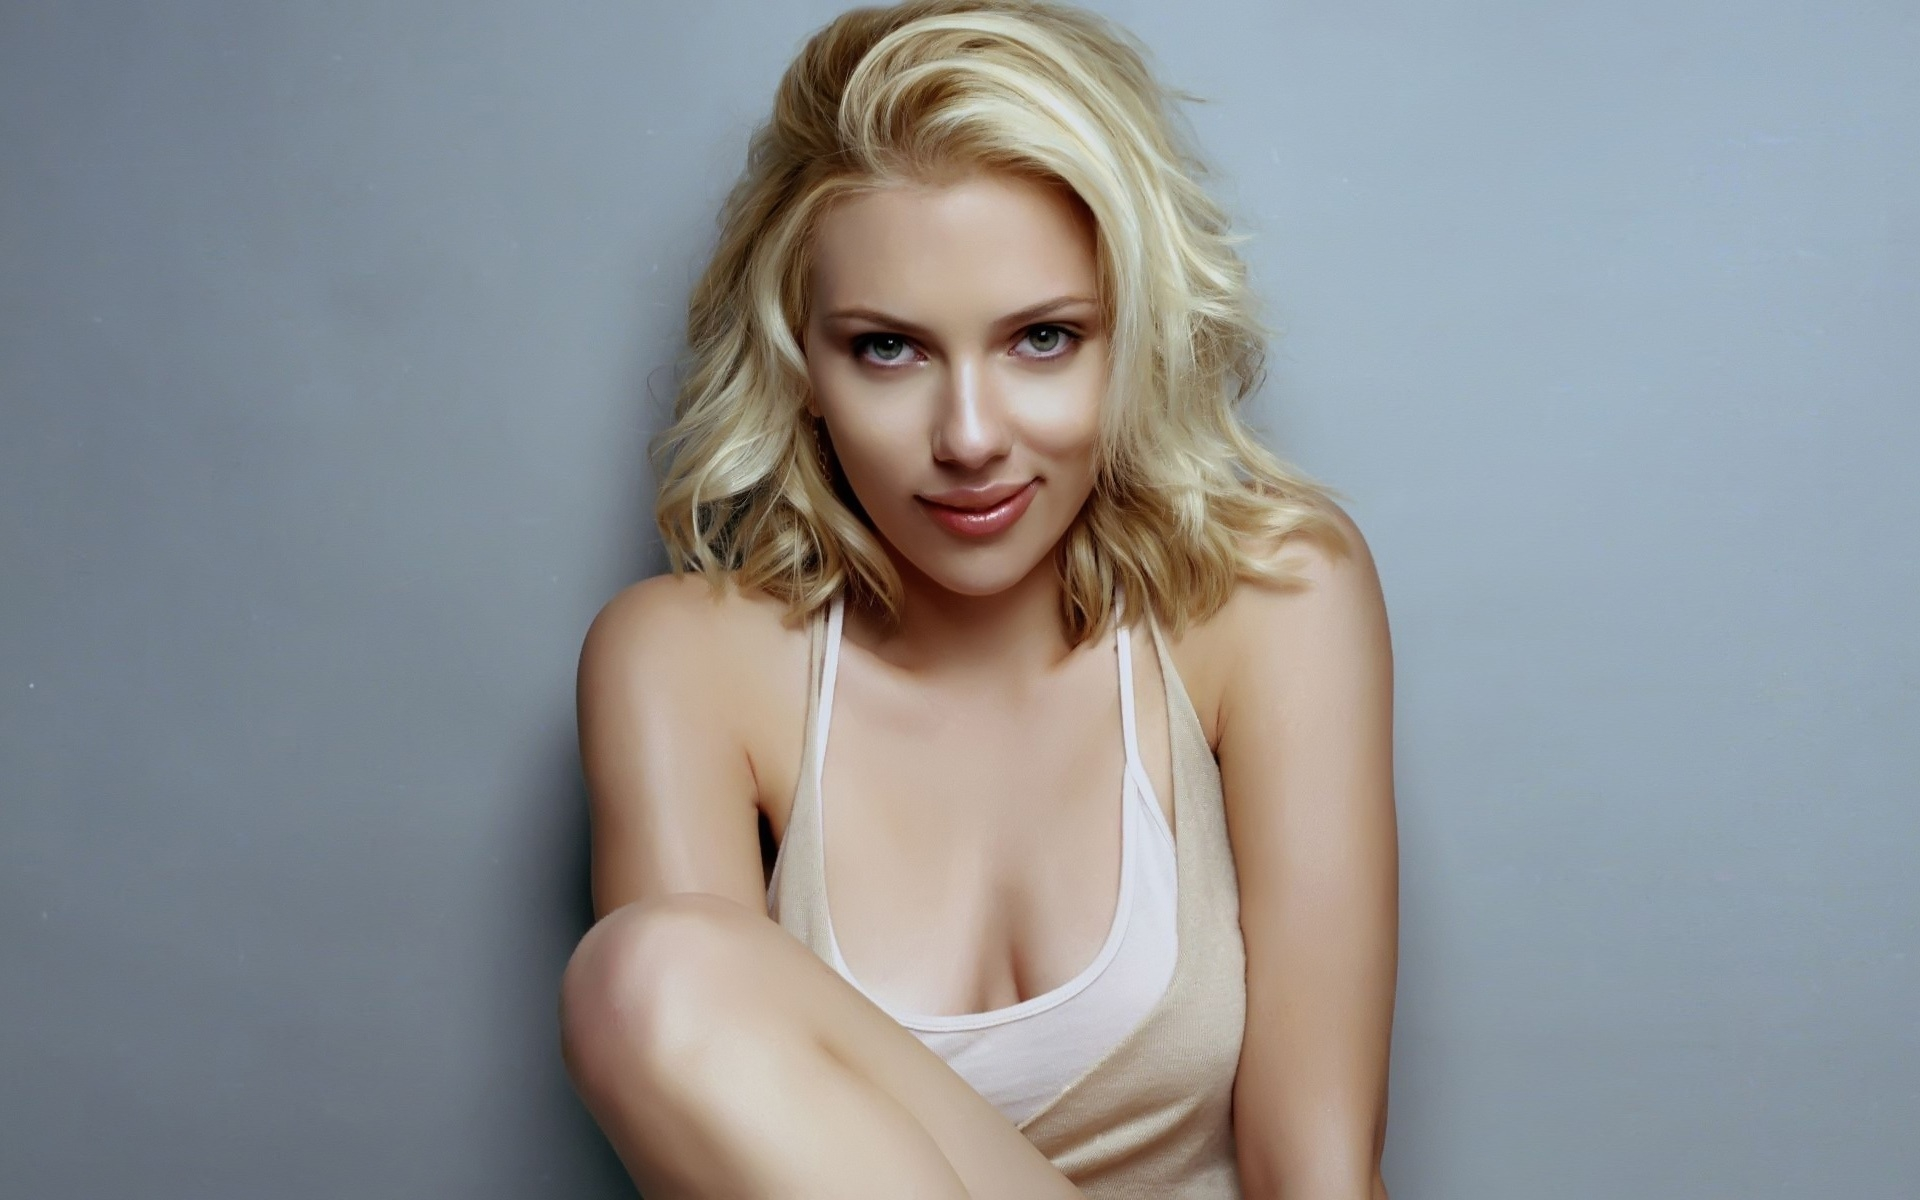 Scarlett Johansson 1 1366x768 Resolution